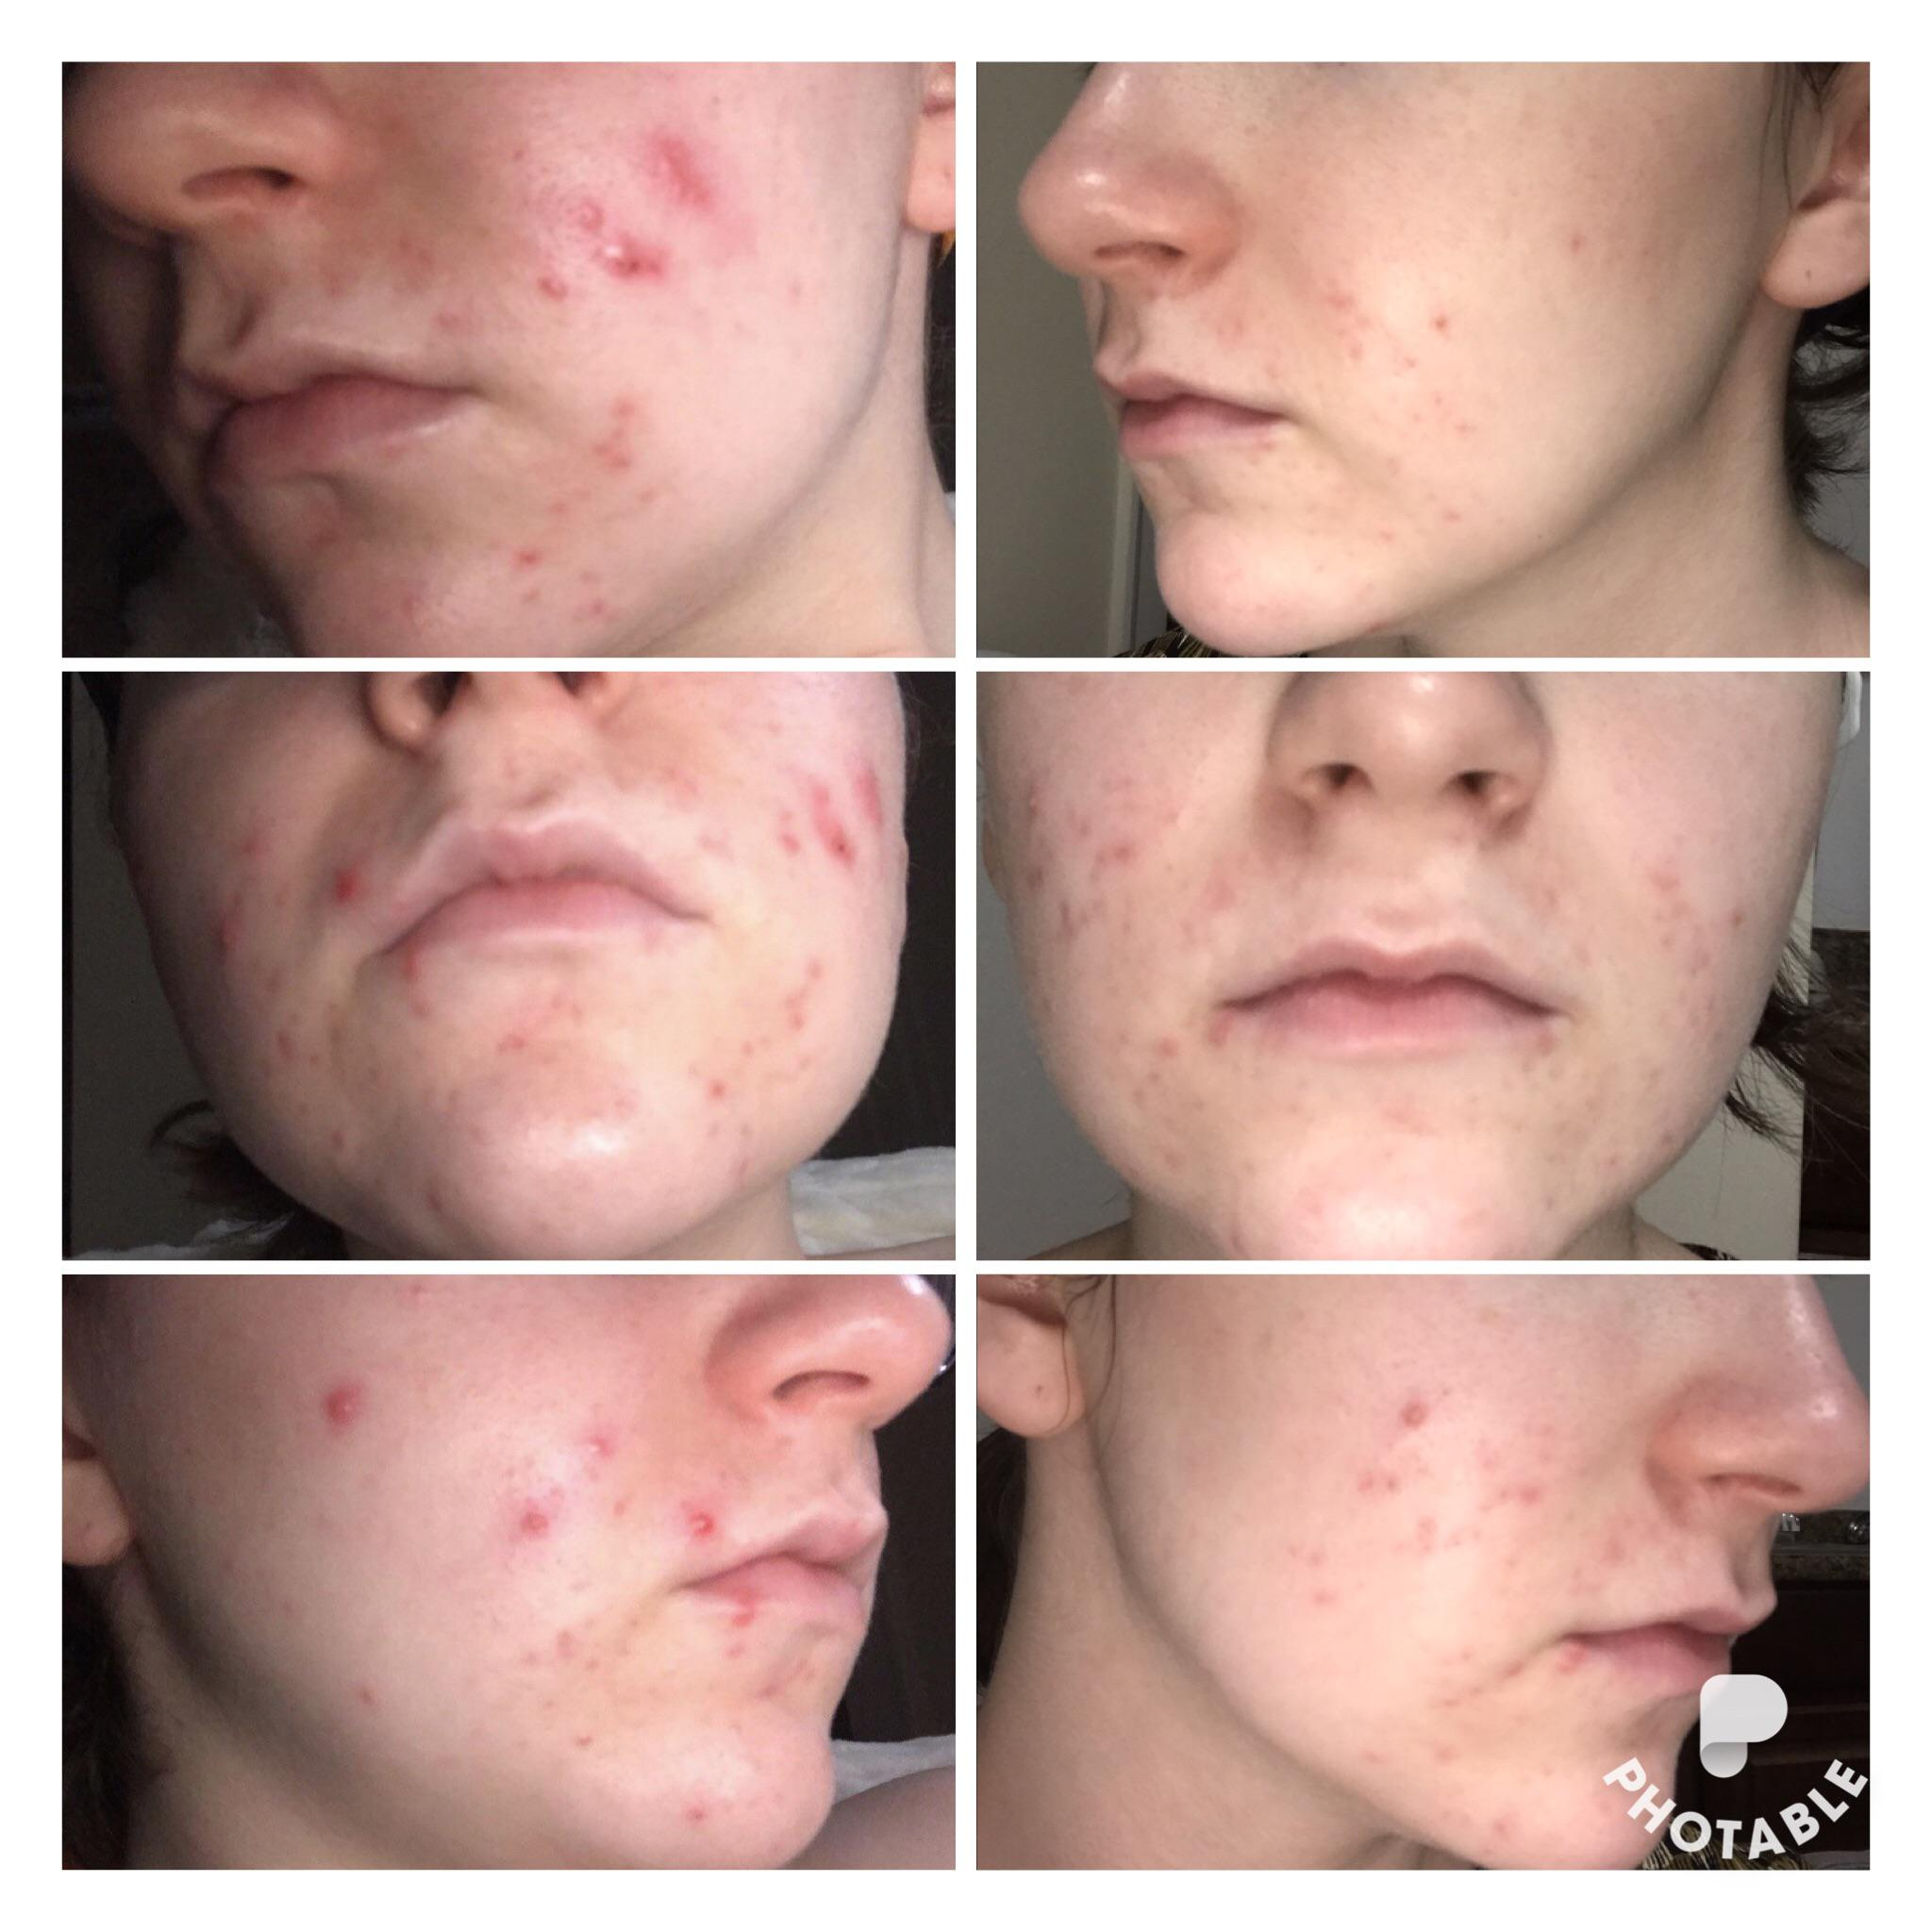 [B&A] 2 months, 4 days on Spironolactone